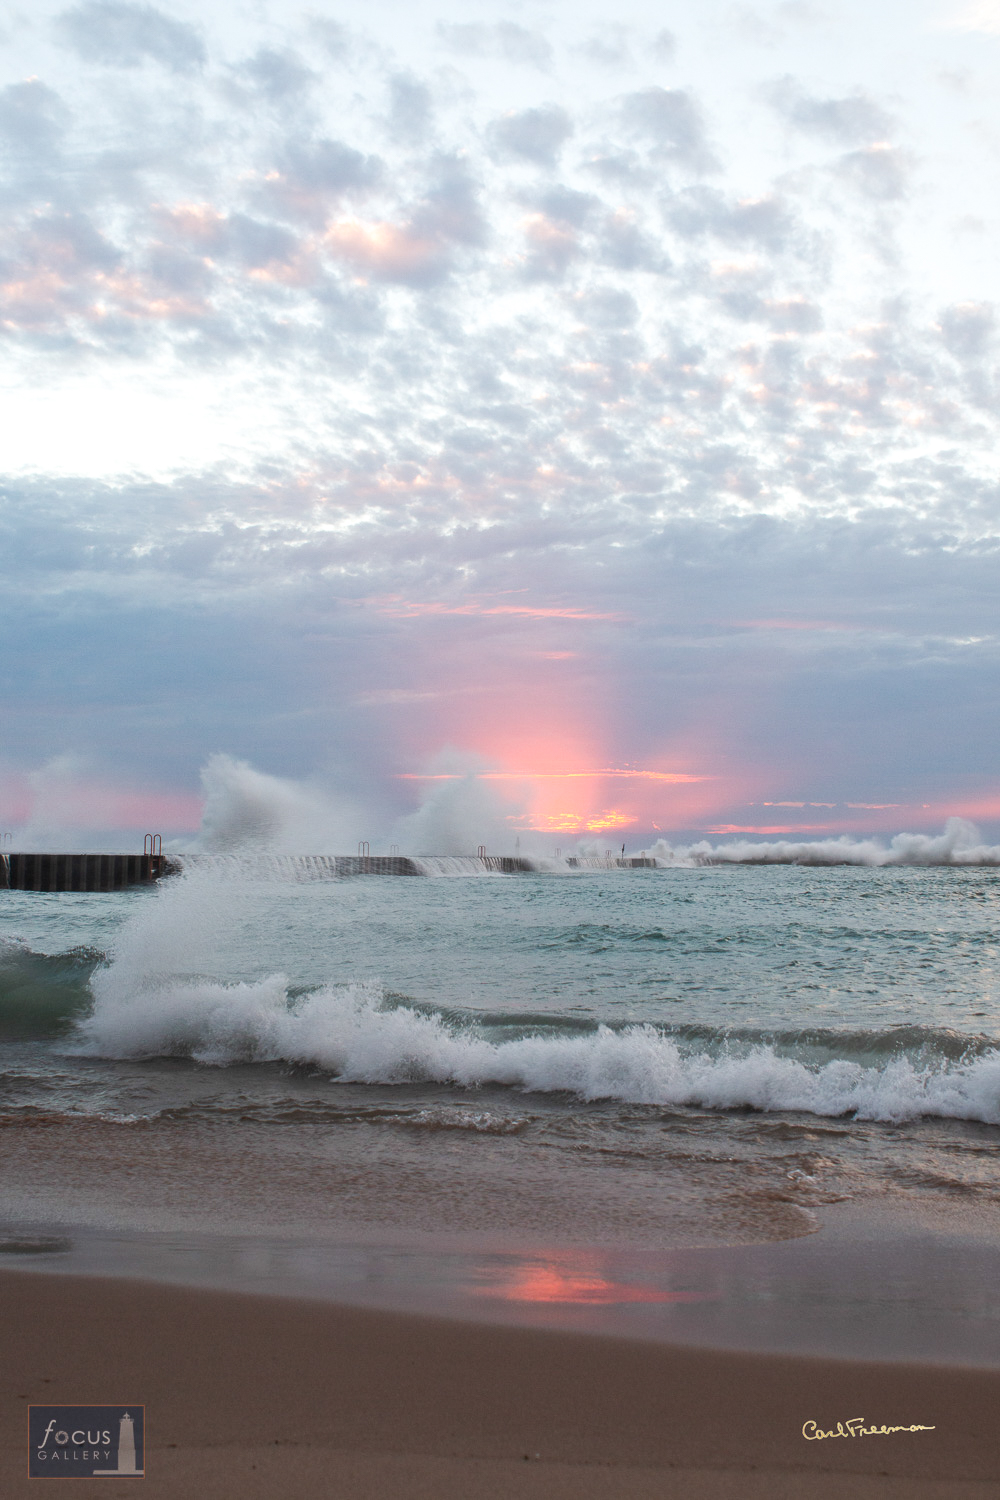 Photo © Carl Freeman Taken from the beach between the Elberta Pier and the south snub pier.